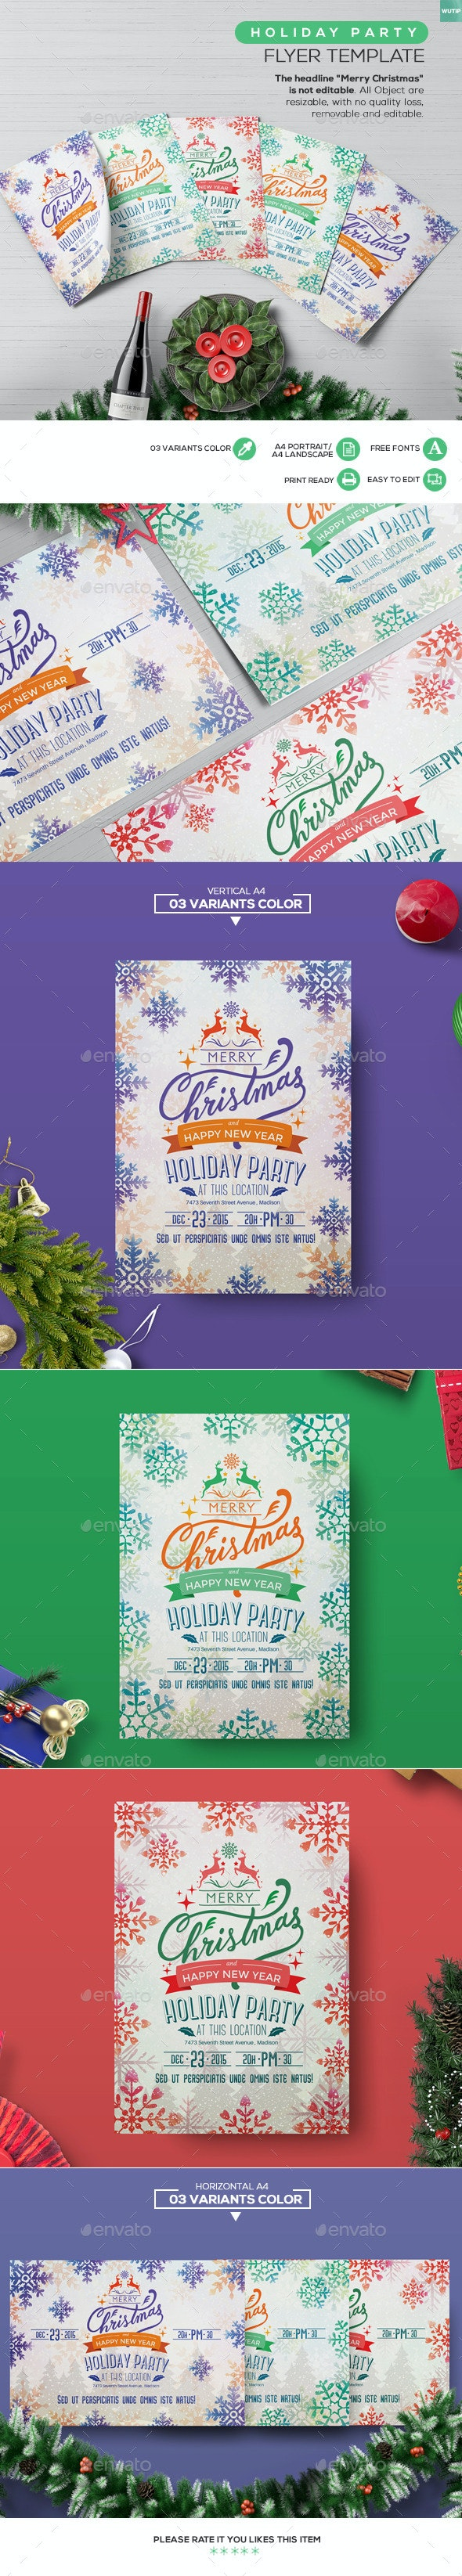 Holiday Party Flyer Template - Holidays Events